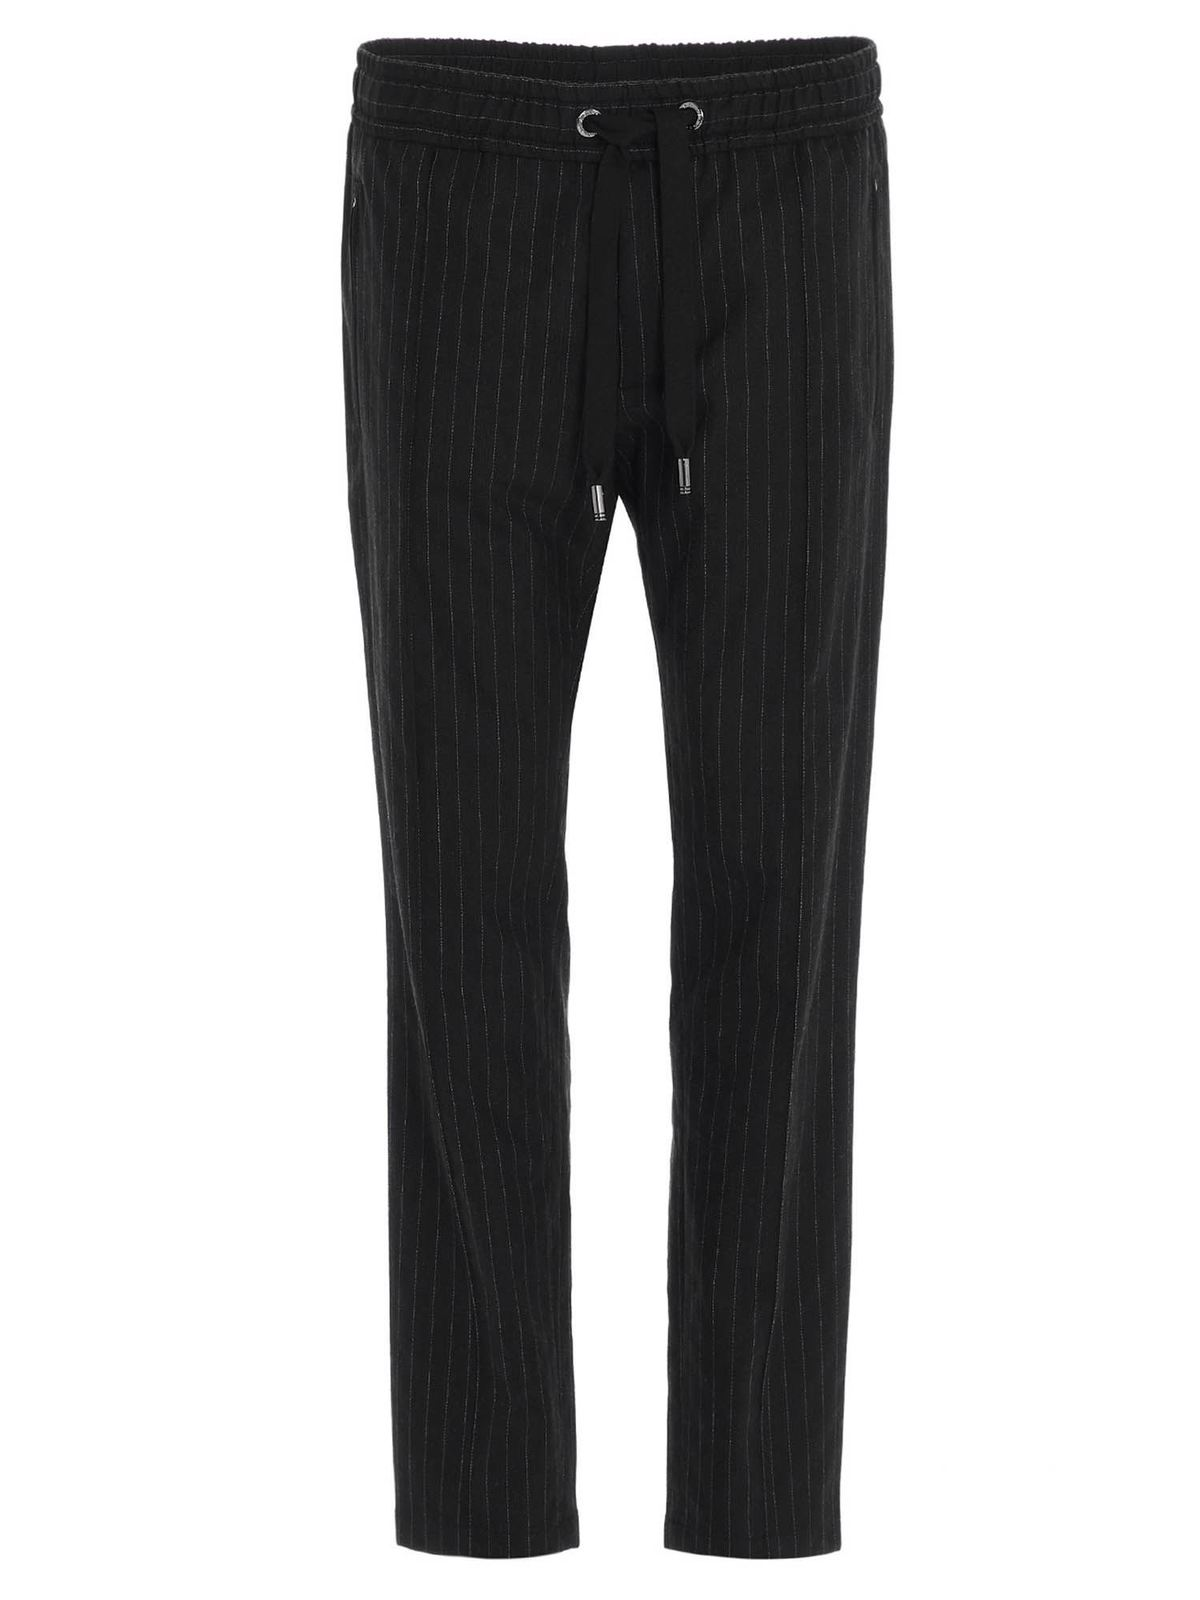 DOLCE & GABBANA PINSTRIPE JOGGING PANTS IN BLACK